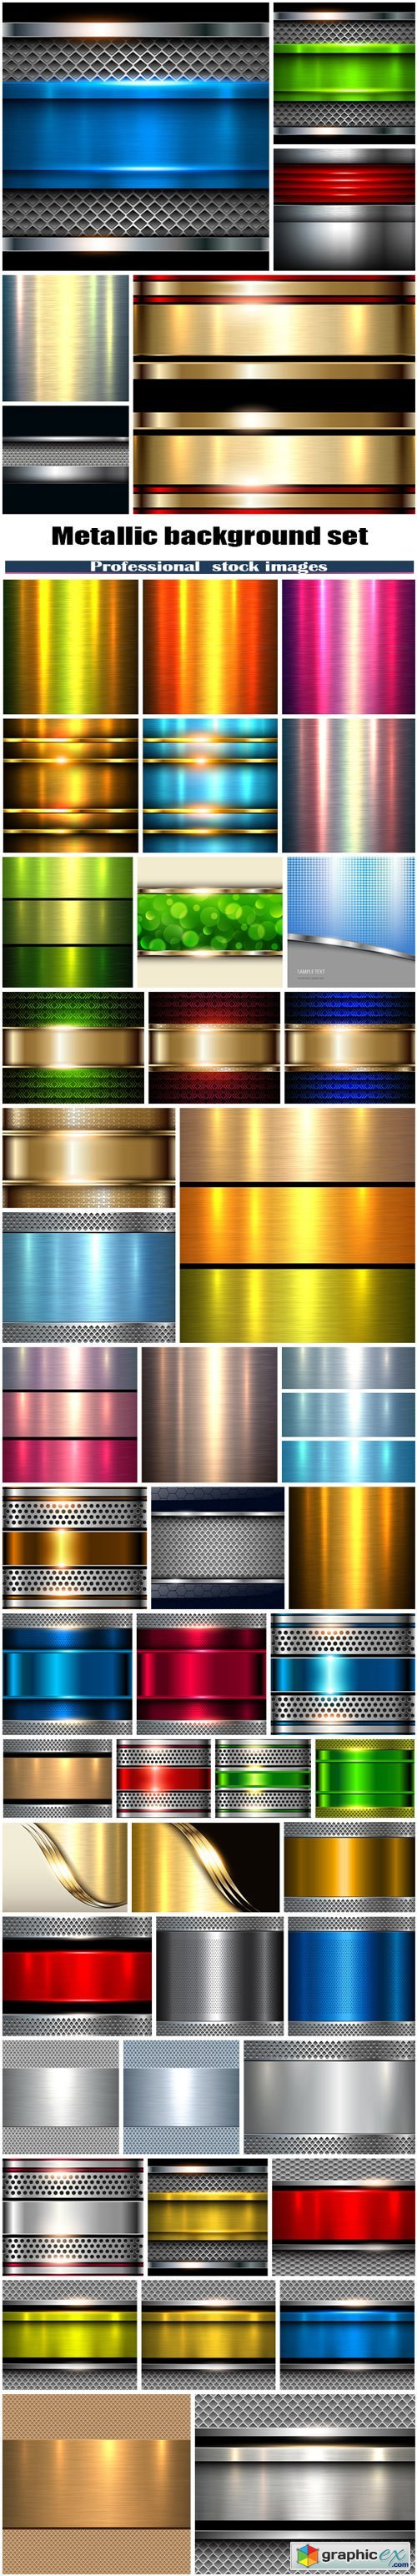 Metallic background set